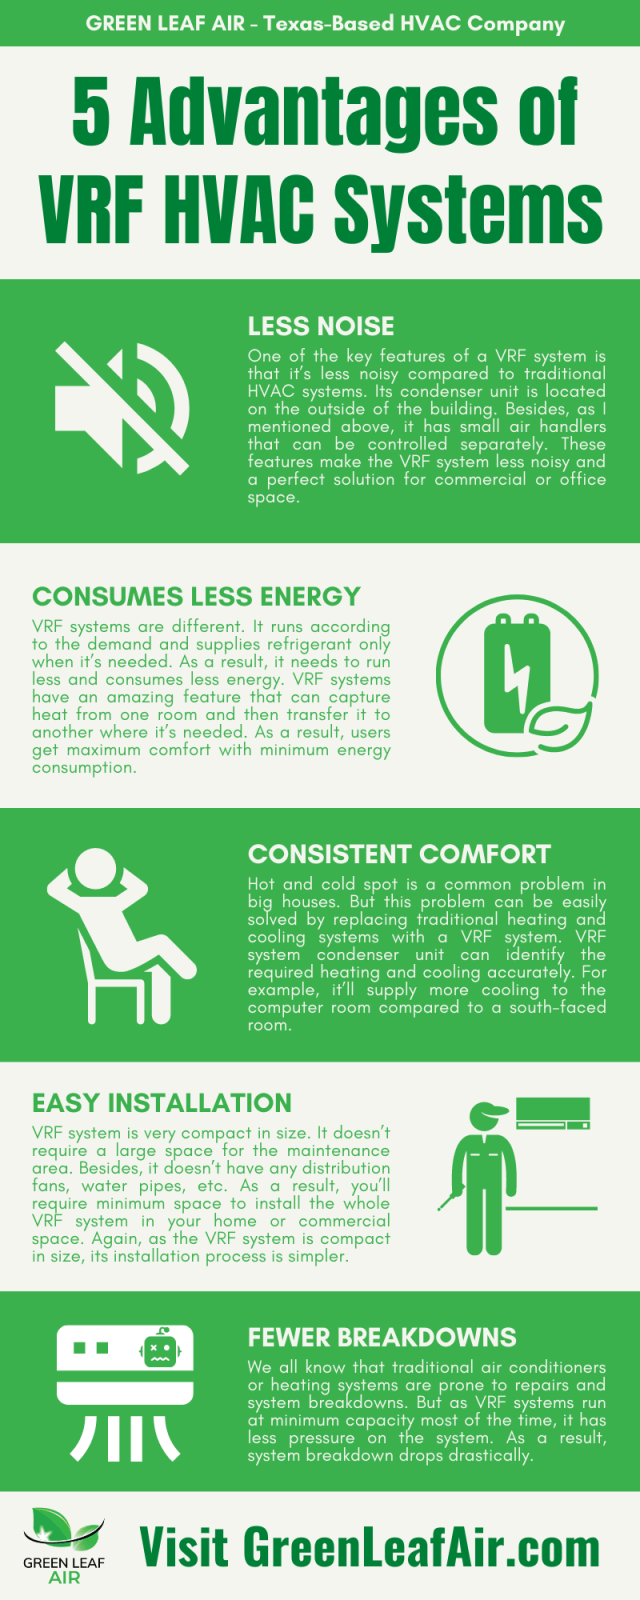 5 Advantages of VRF HVAC Systems